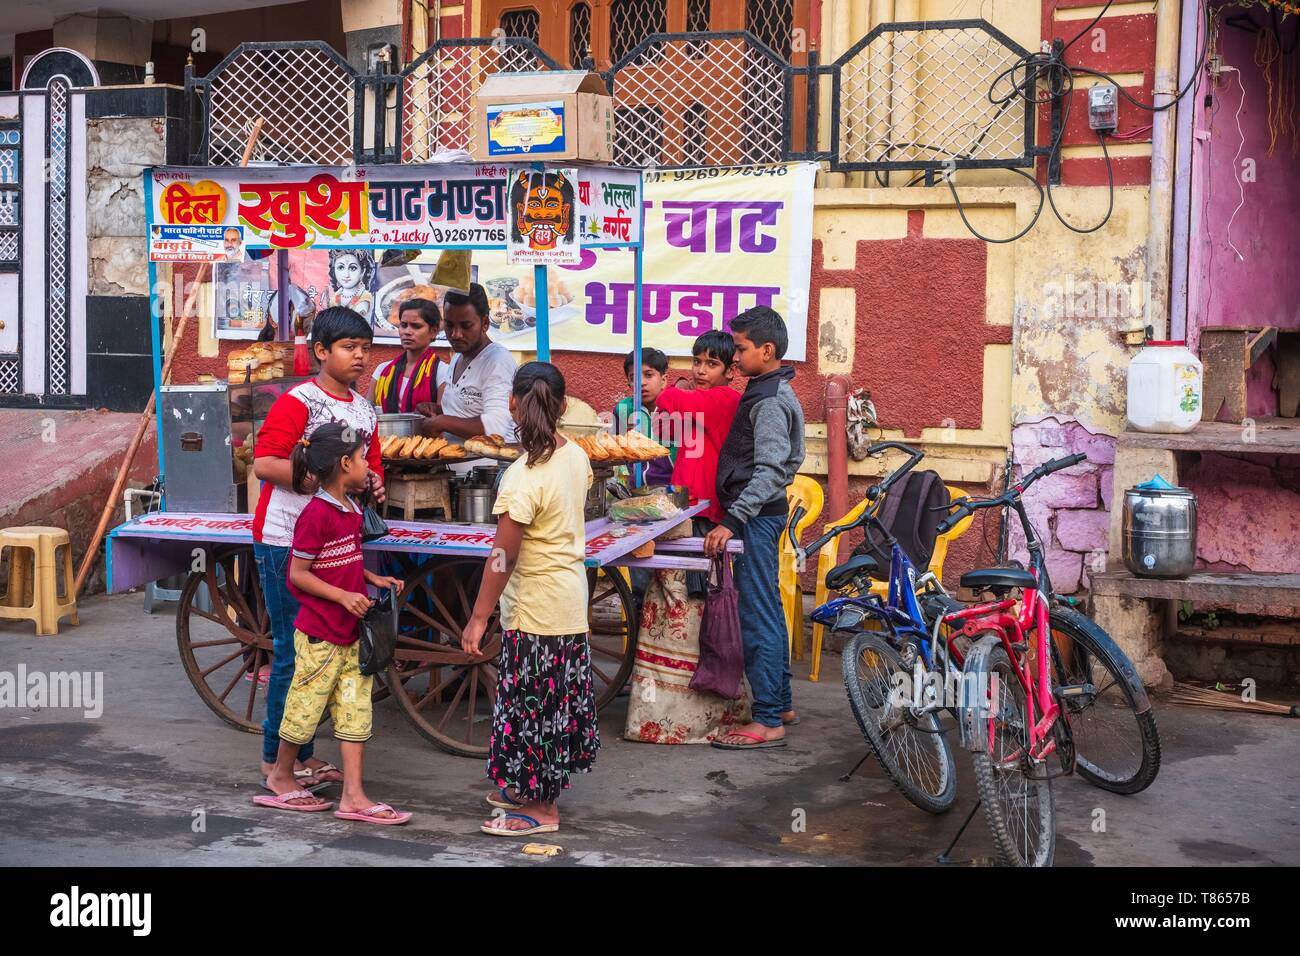 India, Rajasthan, Bharatpur, street vendor in the old city - Stock Image